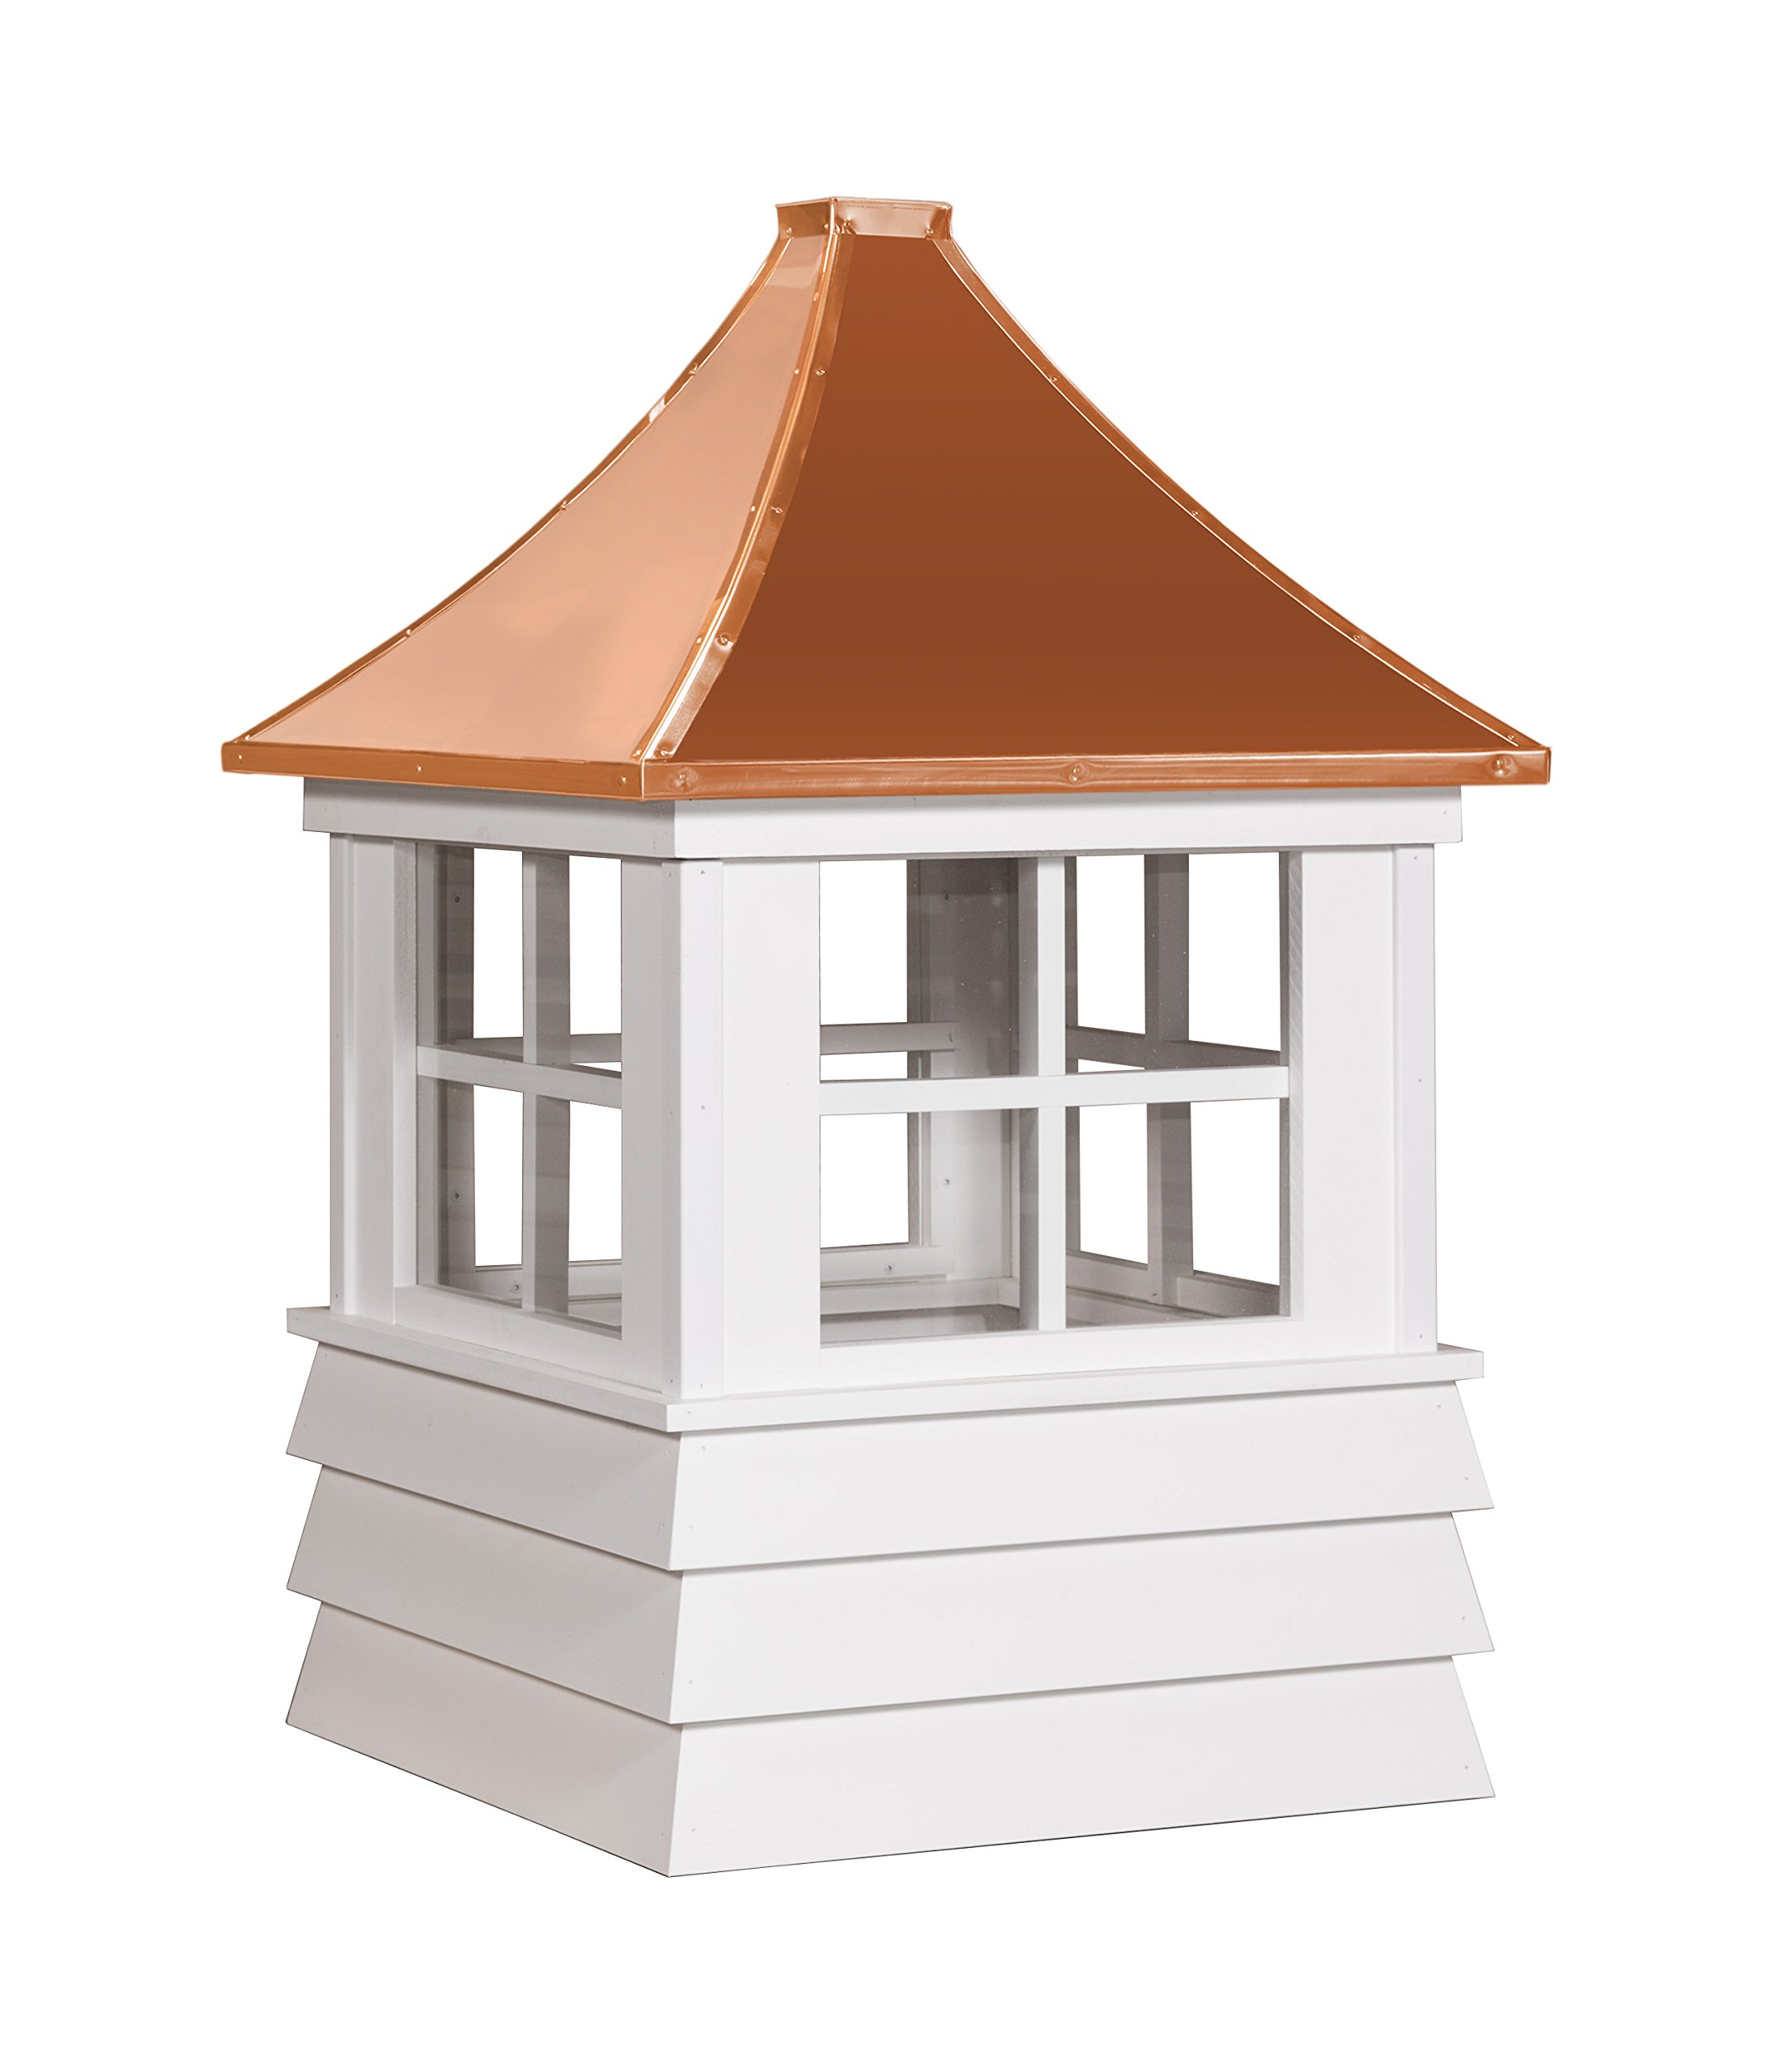 East Coast Weathervanes and Cupolas Vinyl Rochester Cupola (Vinyl, 25 in square x 40 in tall) by East Coast Weathervanes and Cupolas